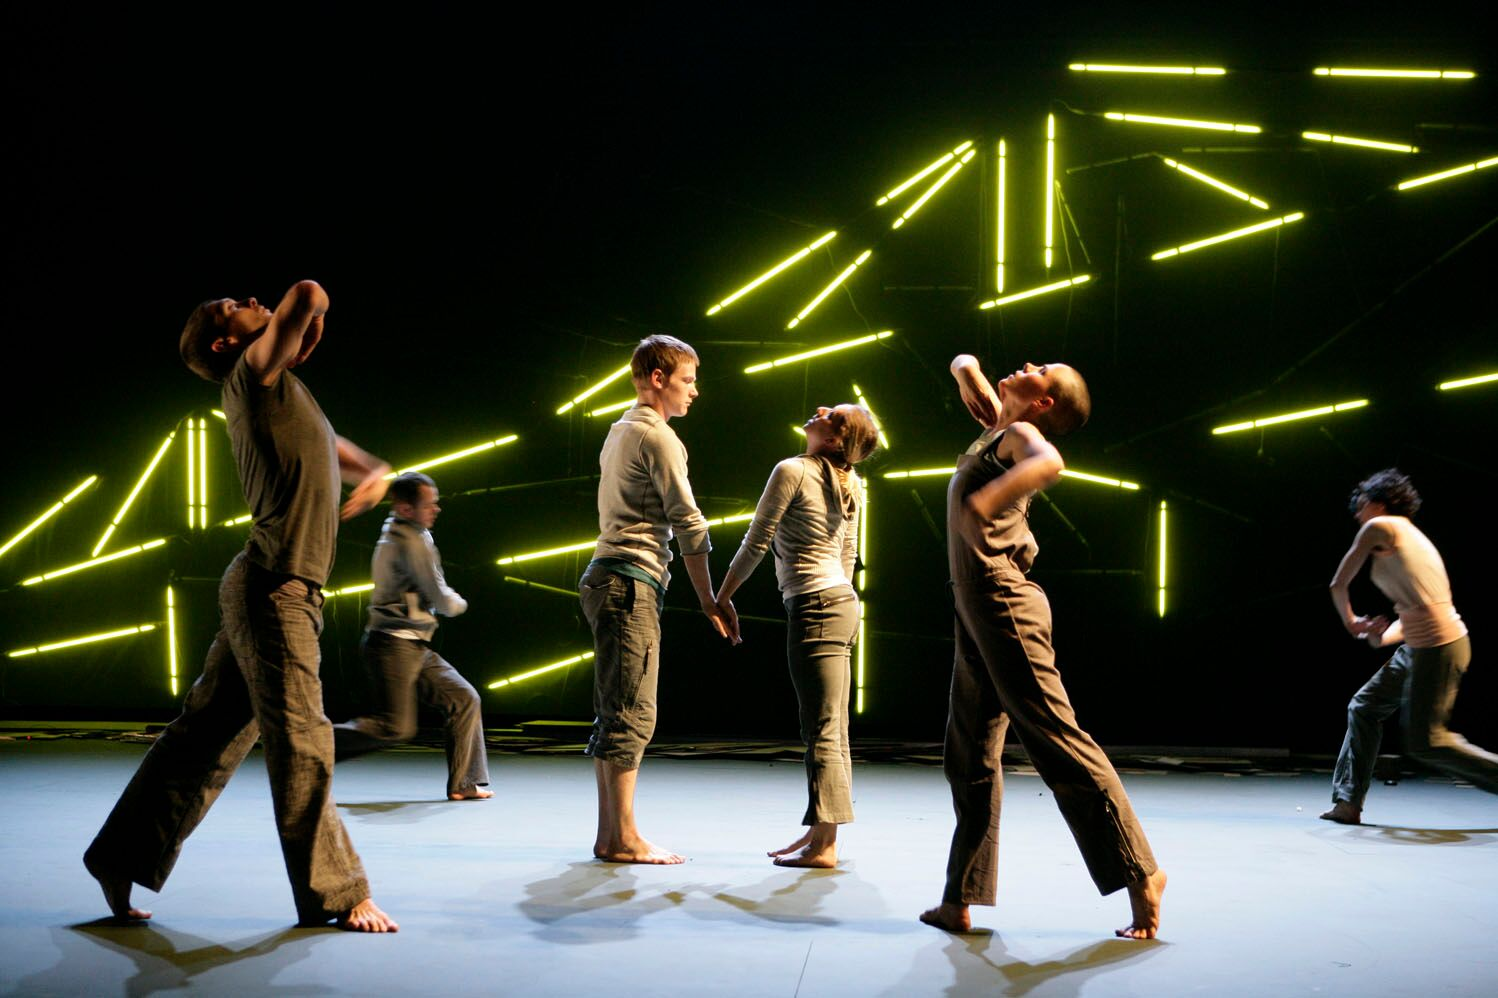 Six dancers dressed in khaki and plain-grey clothes fill the image. The stage is matt-grey with a black background. It features an array of lime coloured fluorescent lights arranged in a way that suggests a bridge.